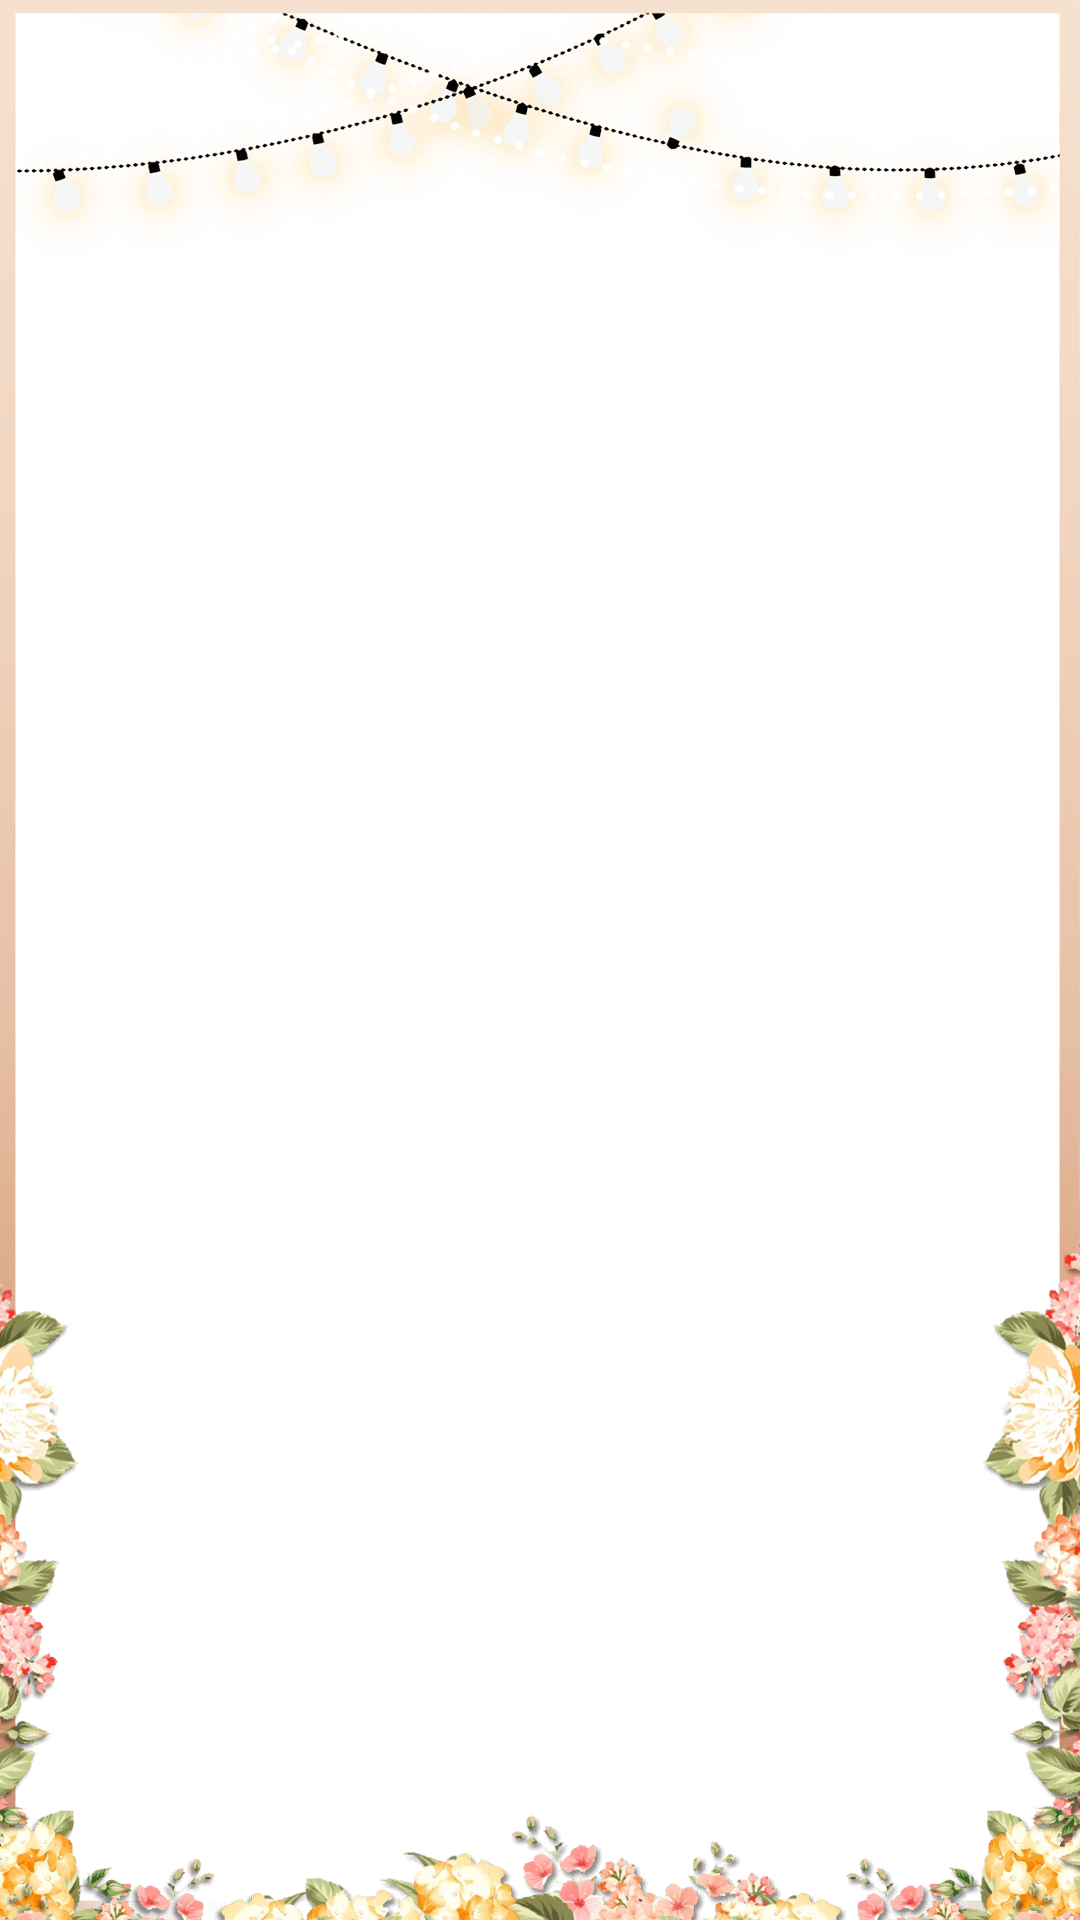 elegant rose gold spring floral wedding snapchat filter geofilter maker on filterpop s. Black Bedroom Furniture Sets. Home Design Ideas